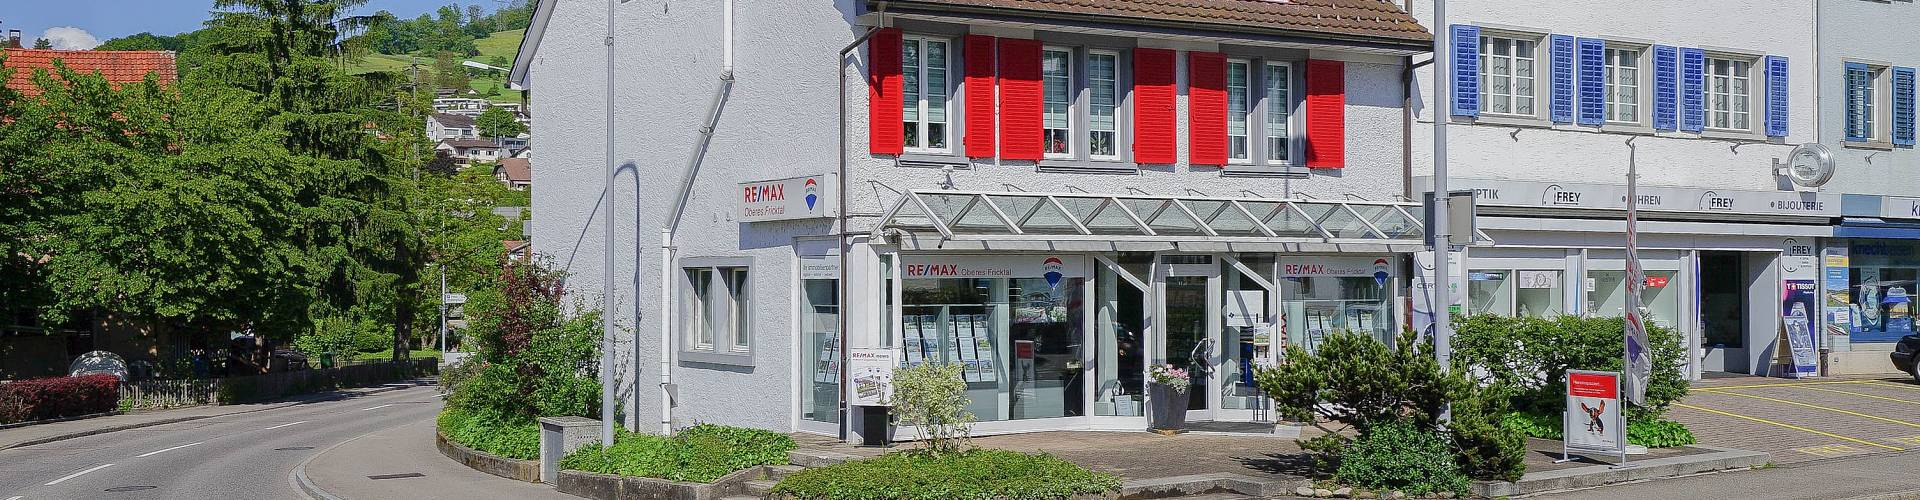 RE/MAX Immobilien Frick